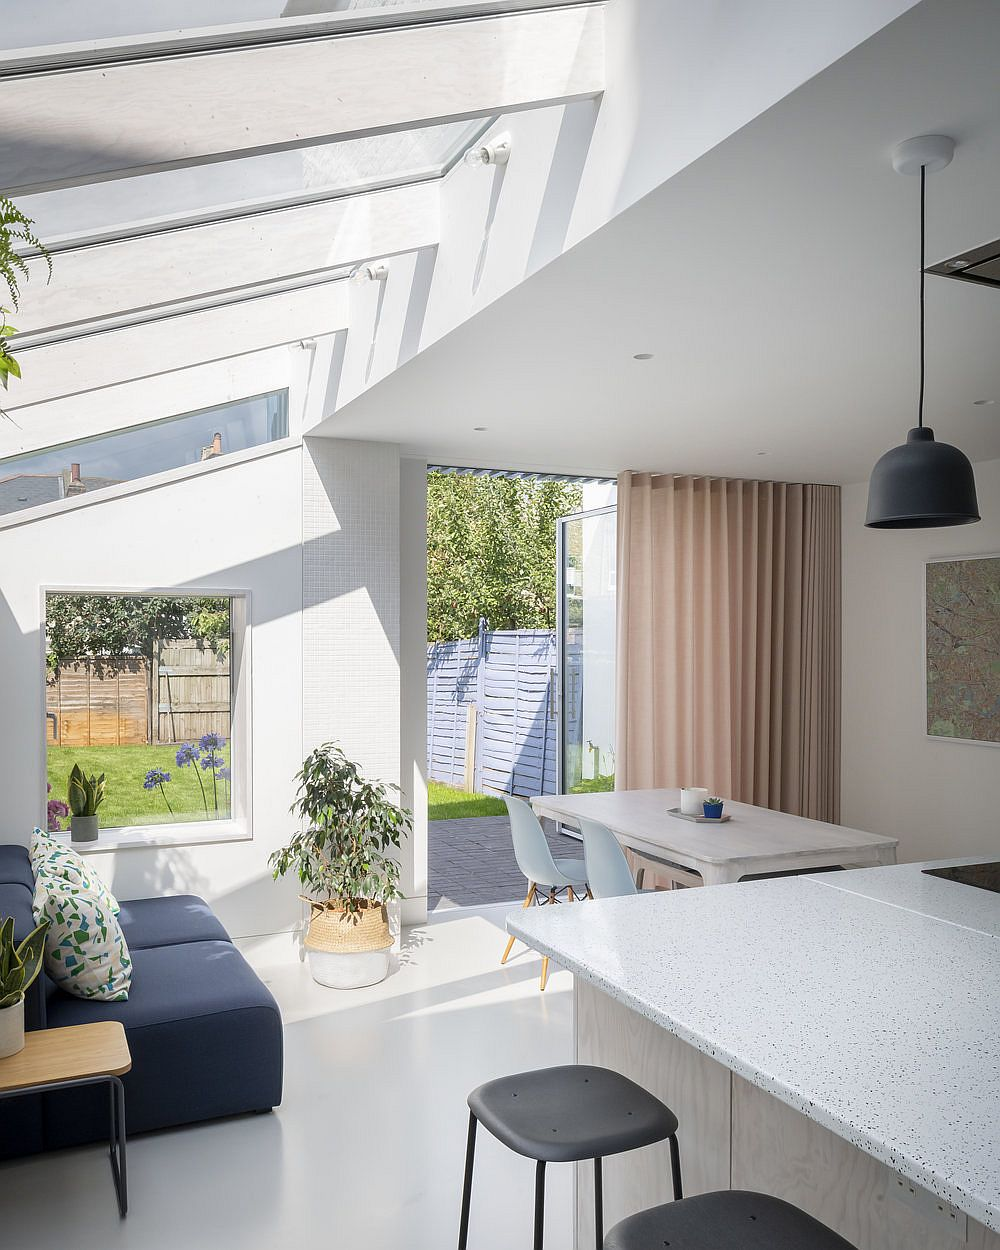 Seamless white resin floor and white walls create a spotless contemporary interior with ample natural light